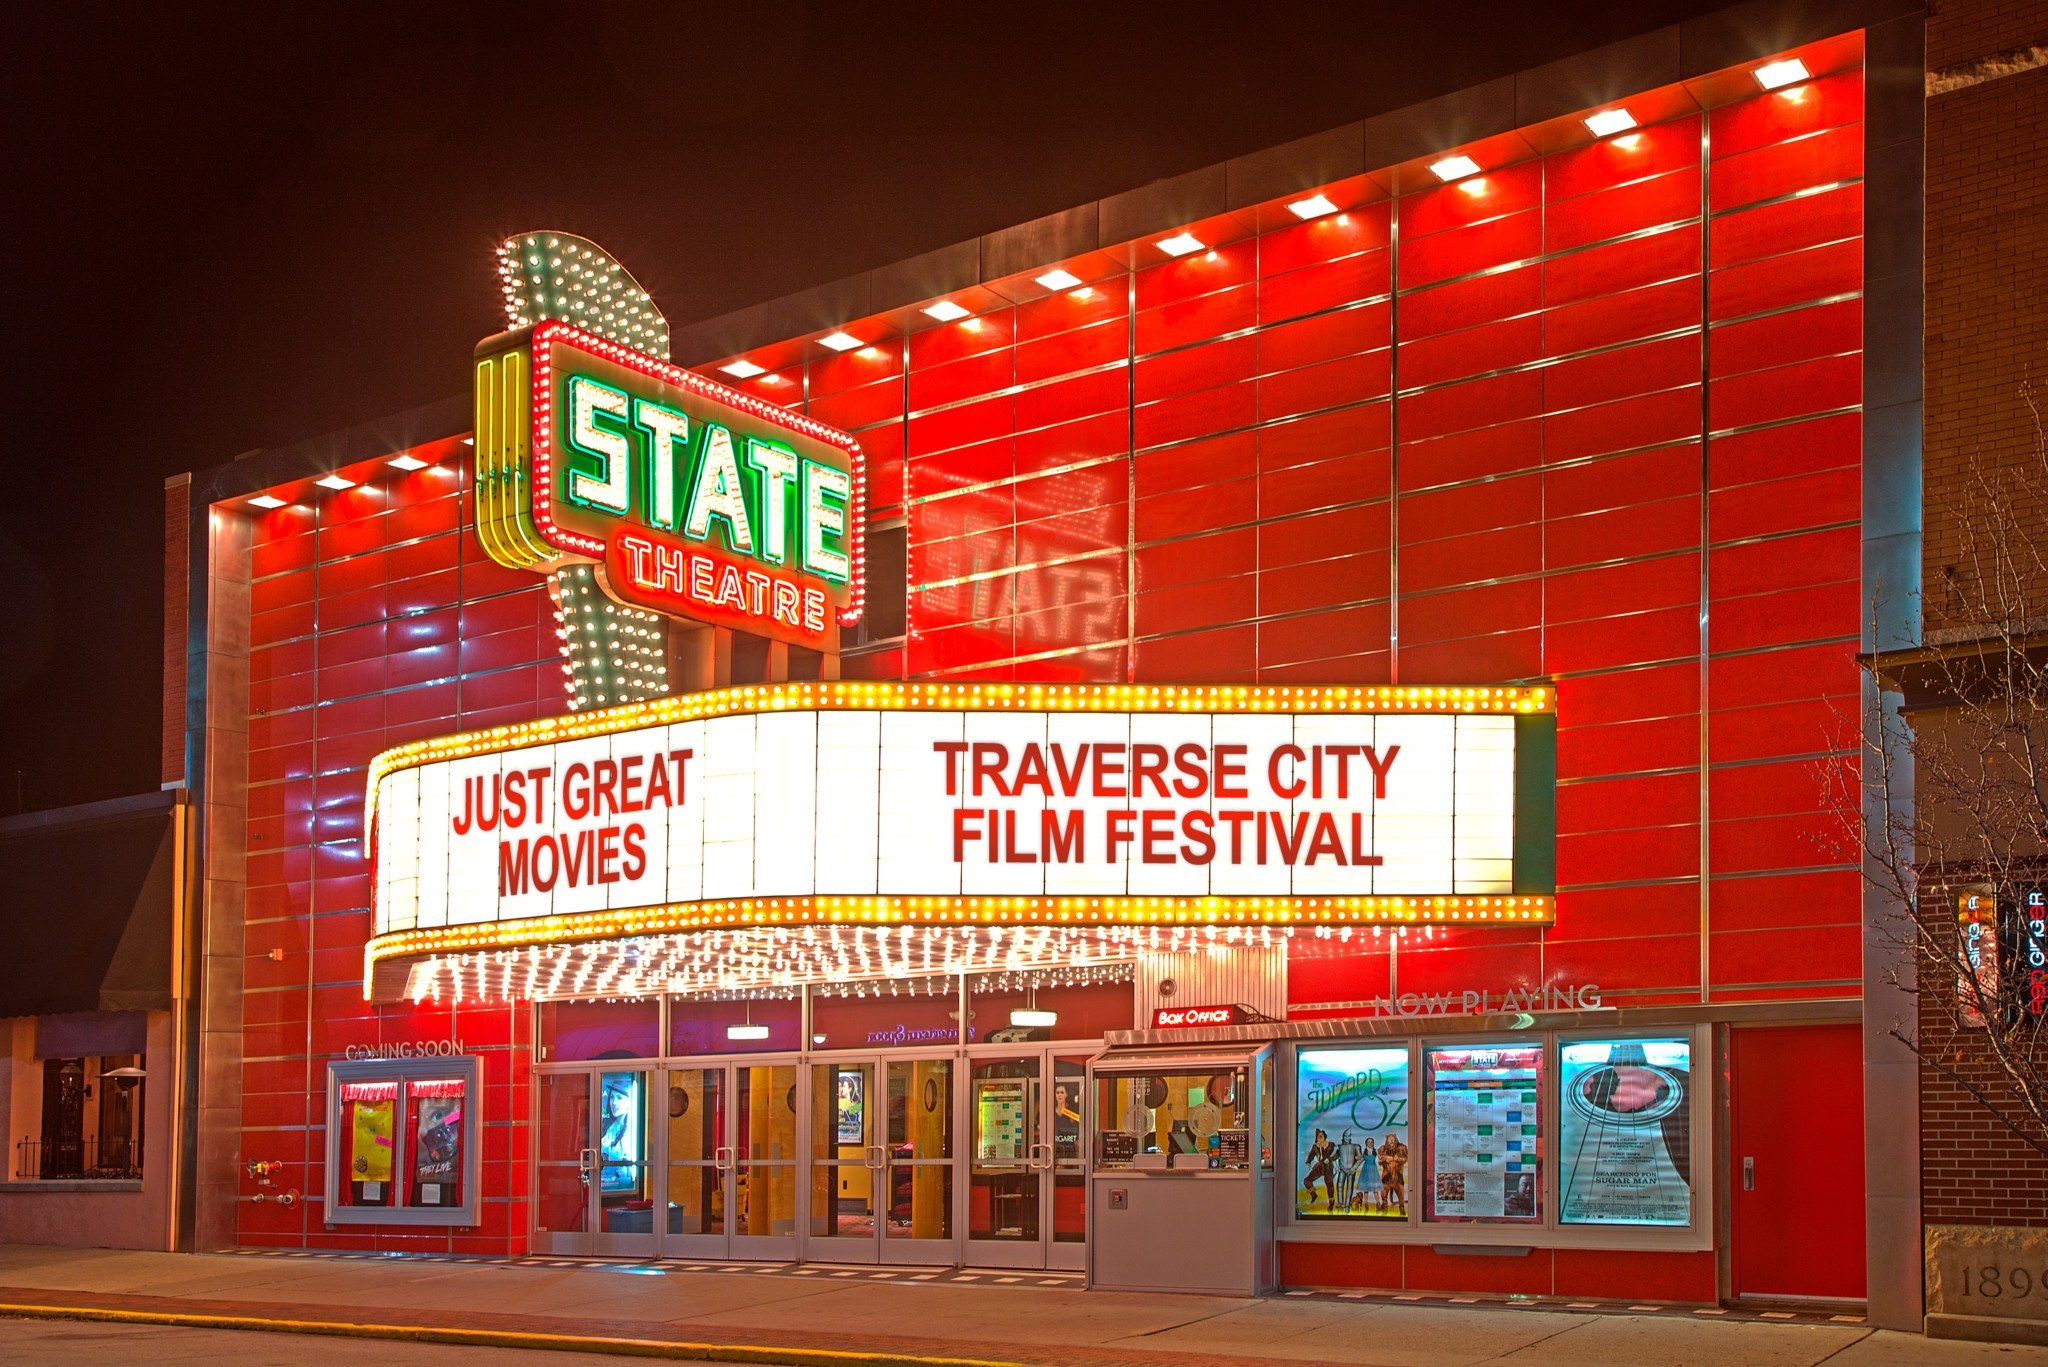 -  Its with immense honour that we can announce that our feature documentary Eminent Monsters has just been invited to Michael Moore's Traverse City Film Festival.